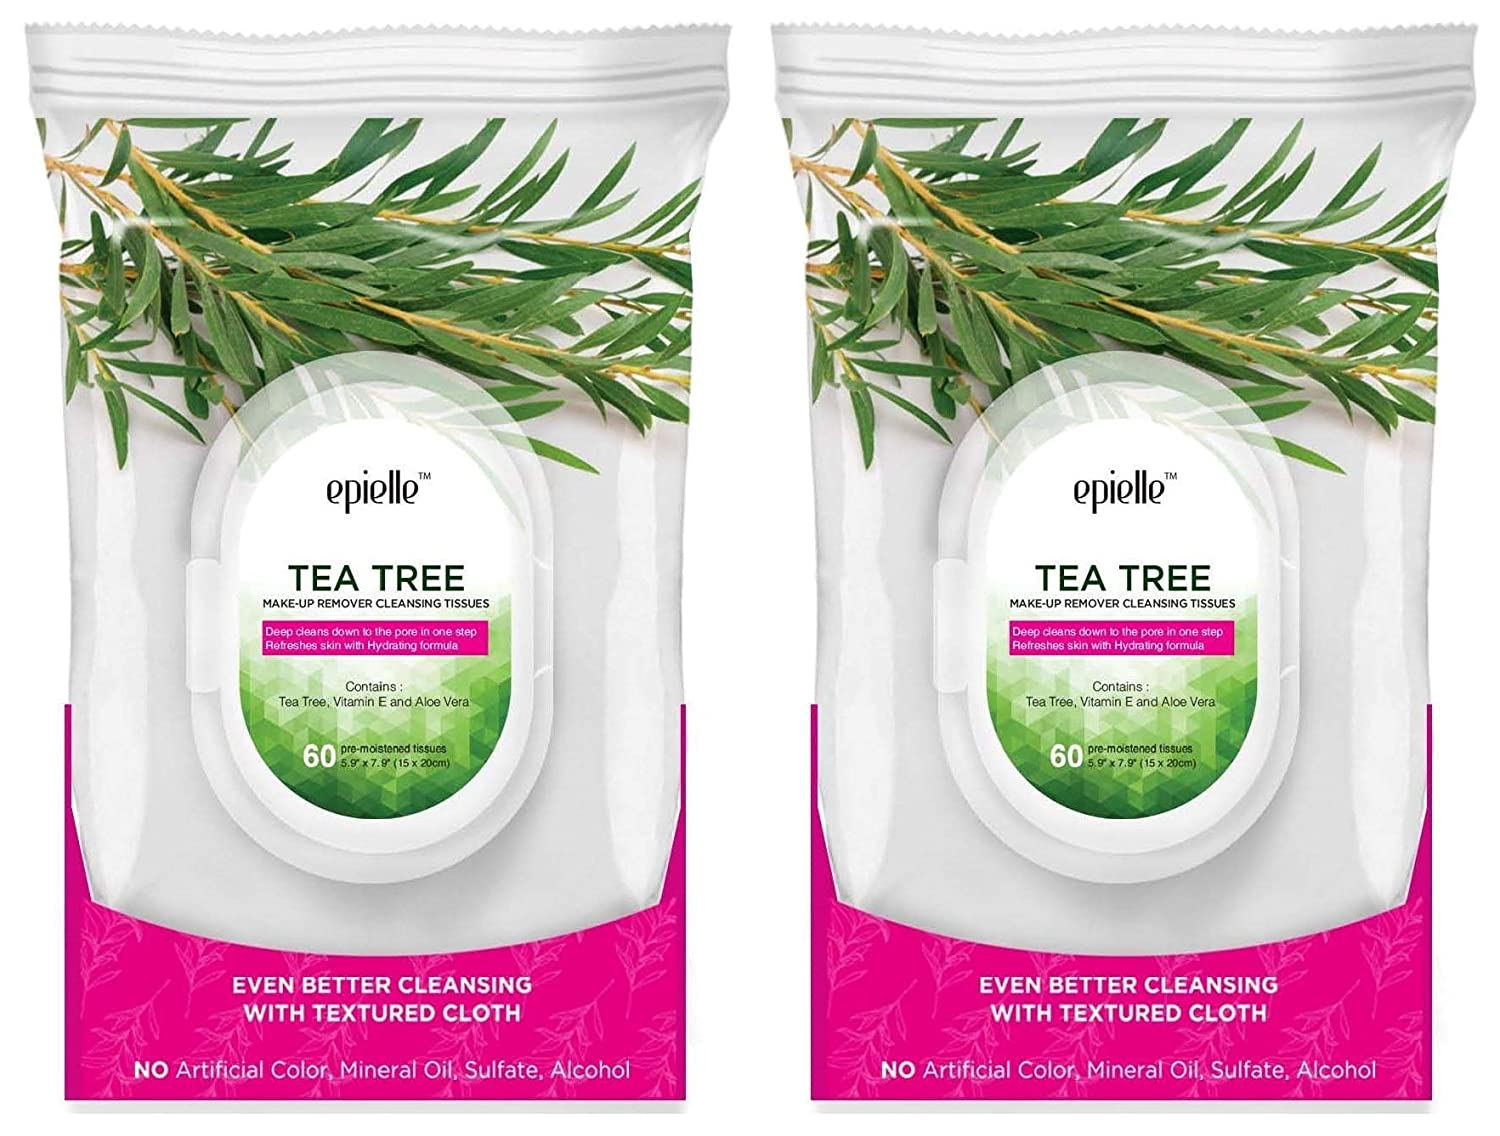 Epielle New Tea Tree Facial Cleansing Facial Tissues Wipes Towelettes - 60ct (Sheets) per pack, Twin Pack (Total 2 packs)